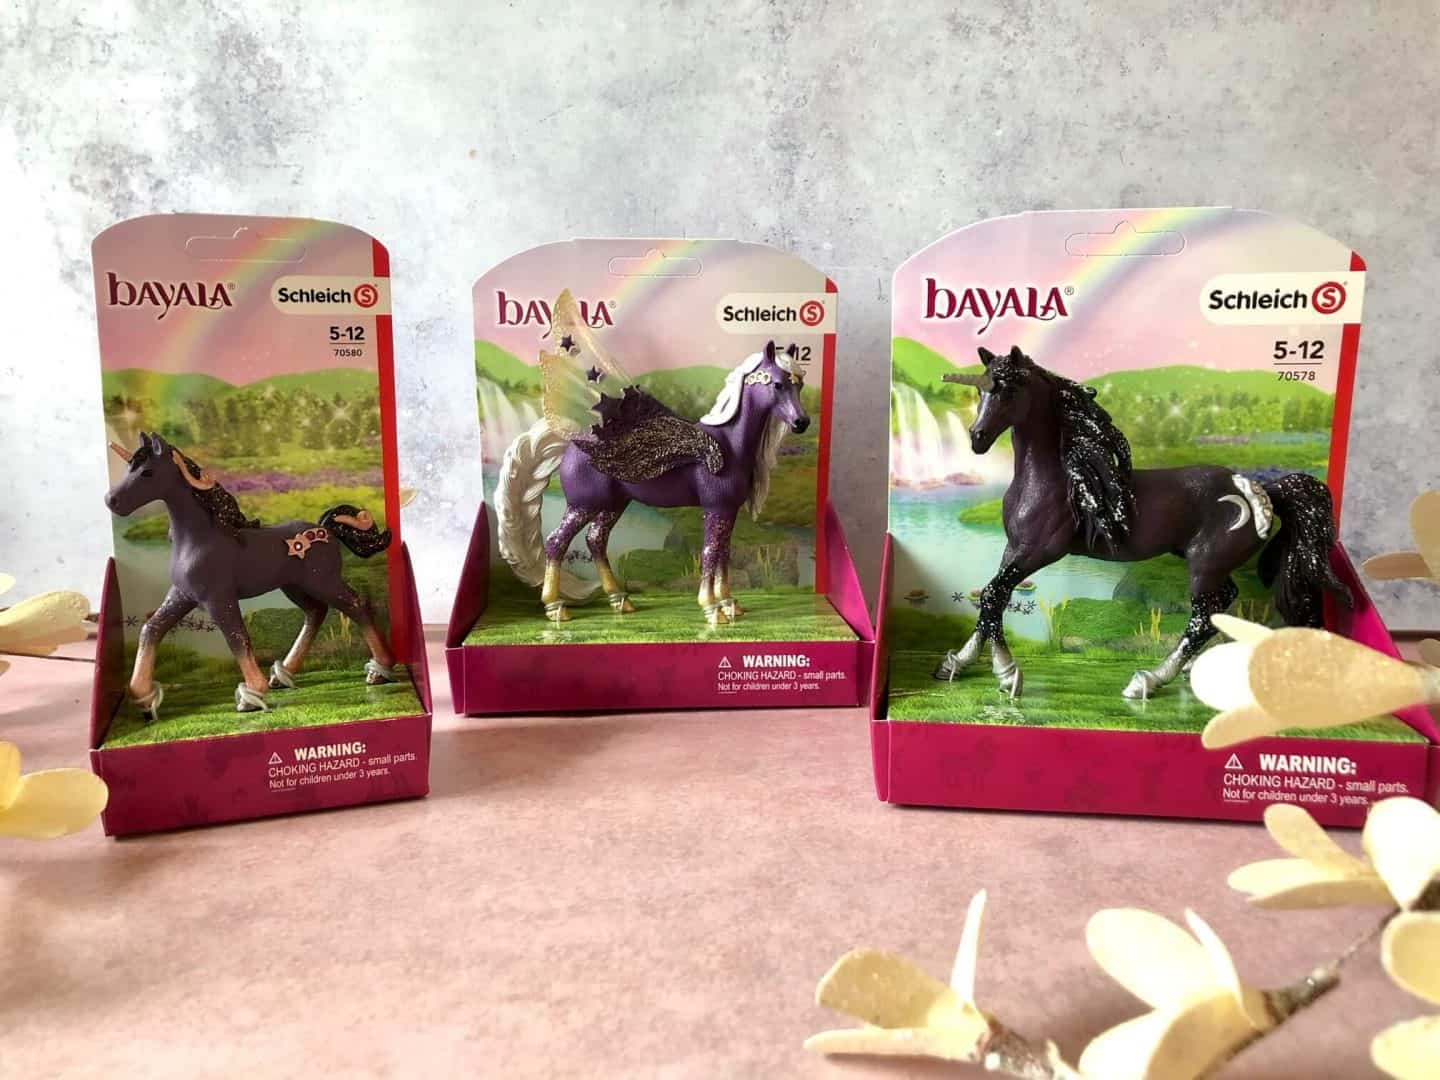 Schleich Bayala Glittering Moon Unicorns - Review